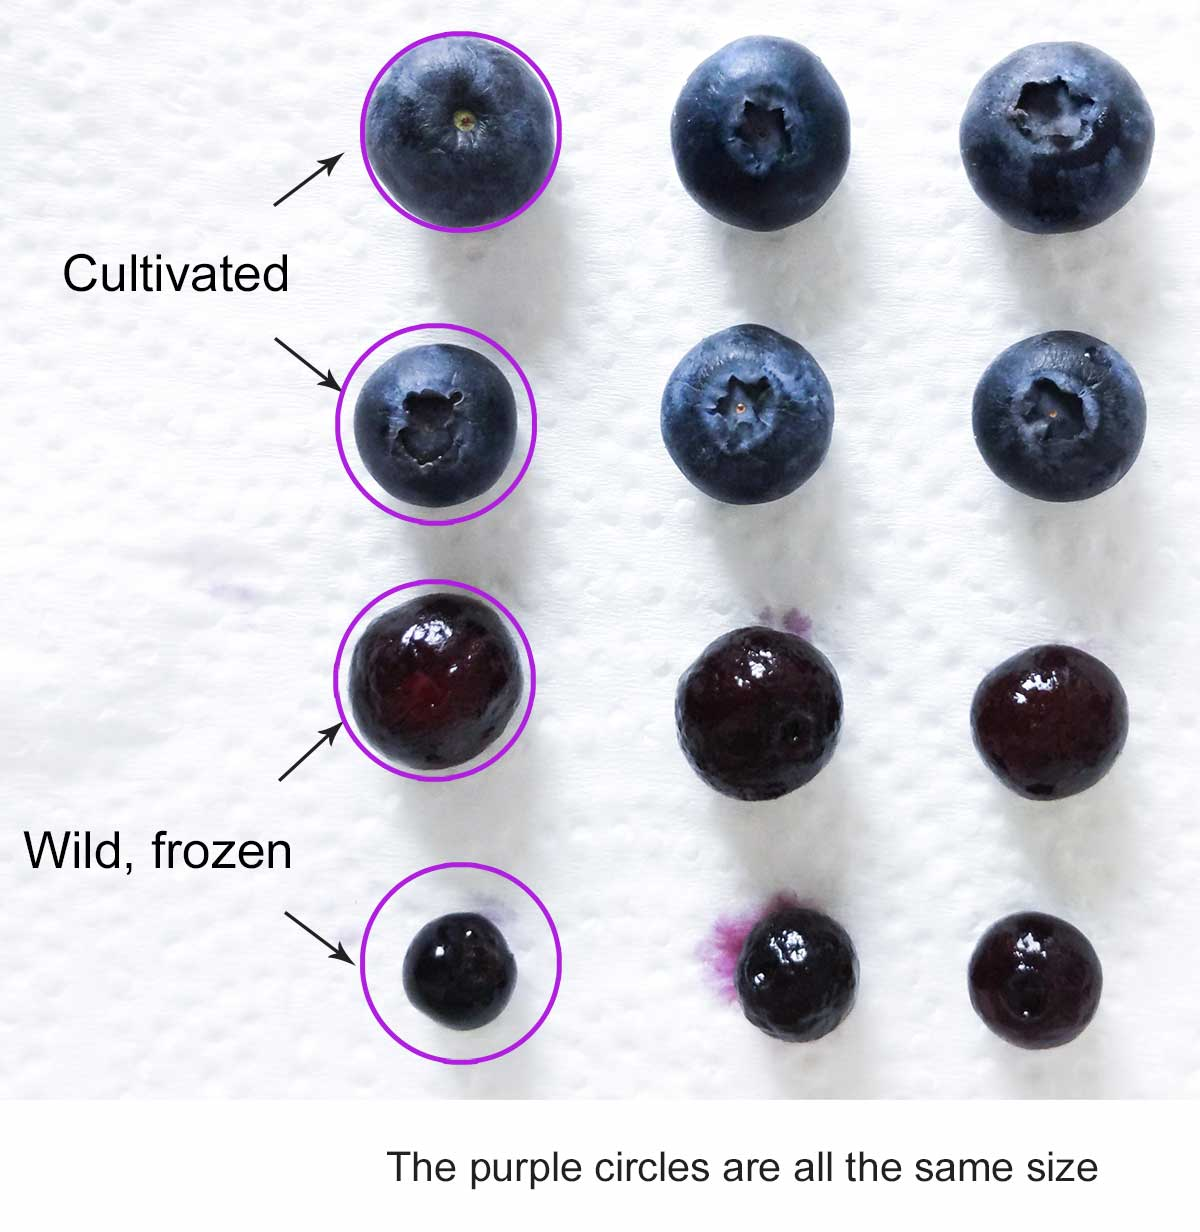 Blueberries lined up by size, the larger ones are twice the size of the smaller ones